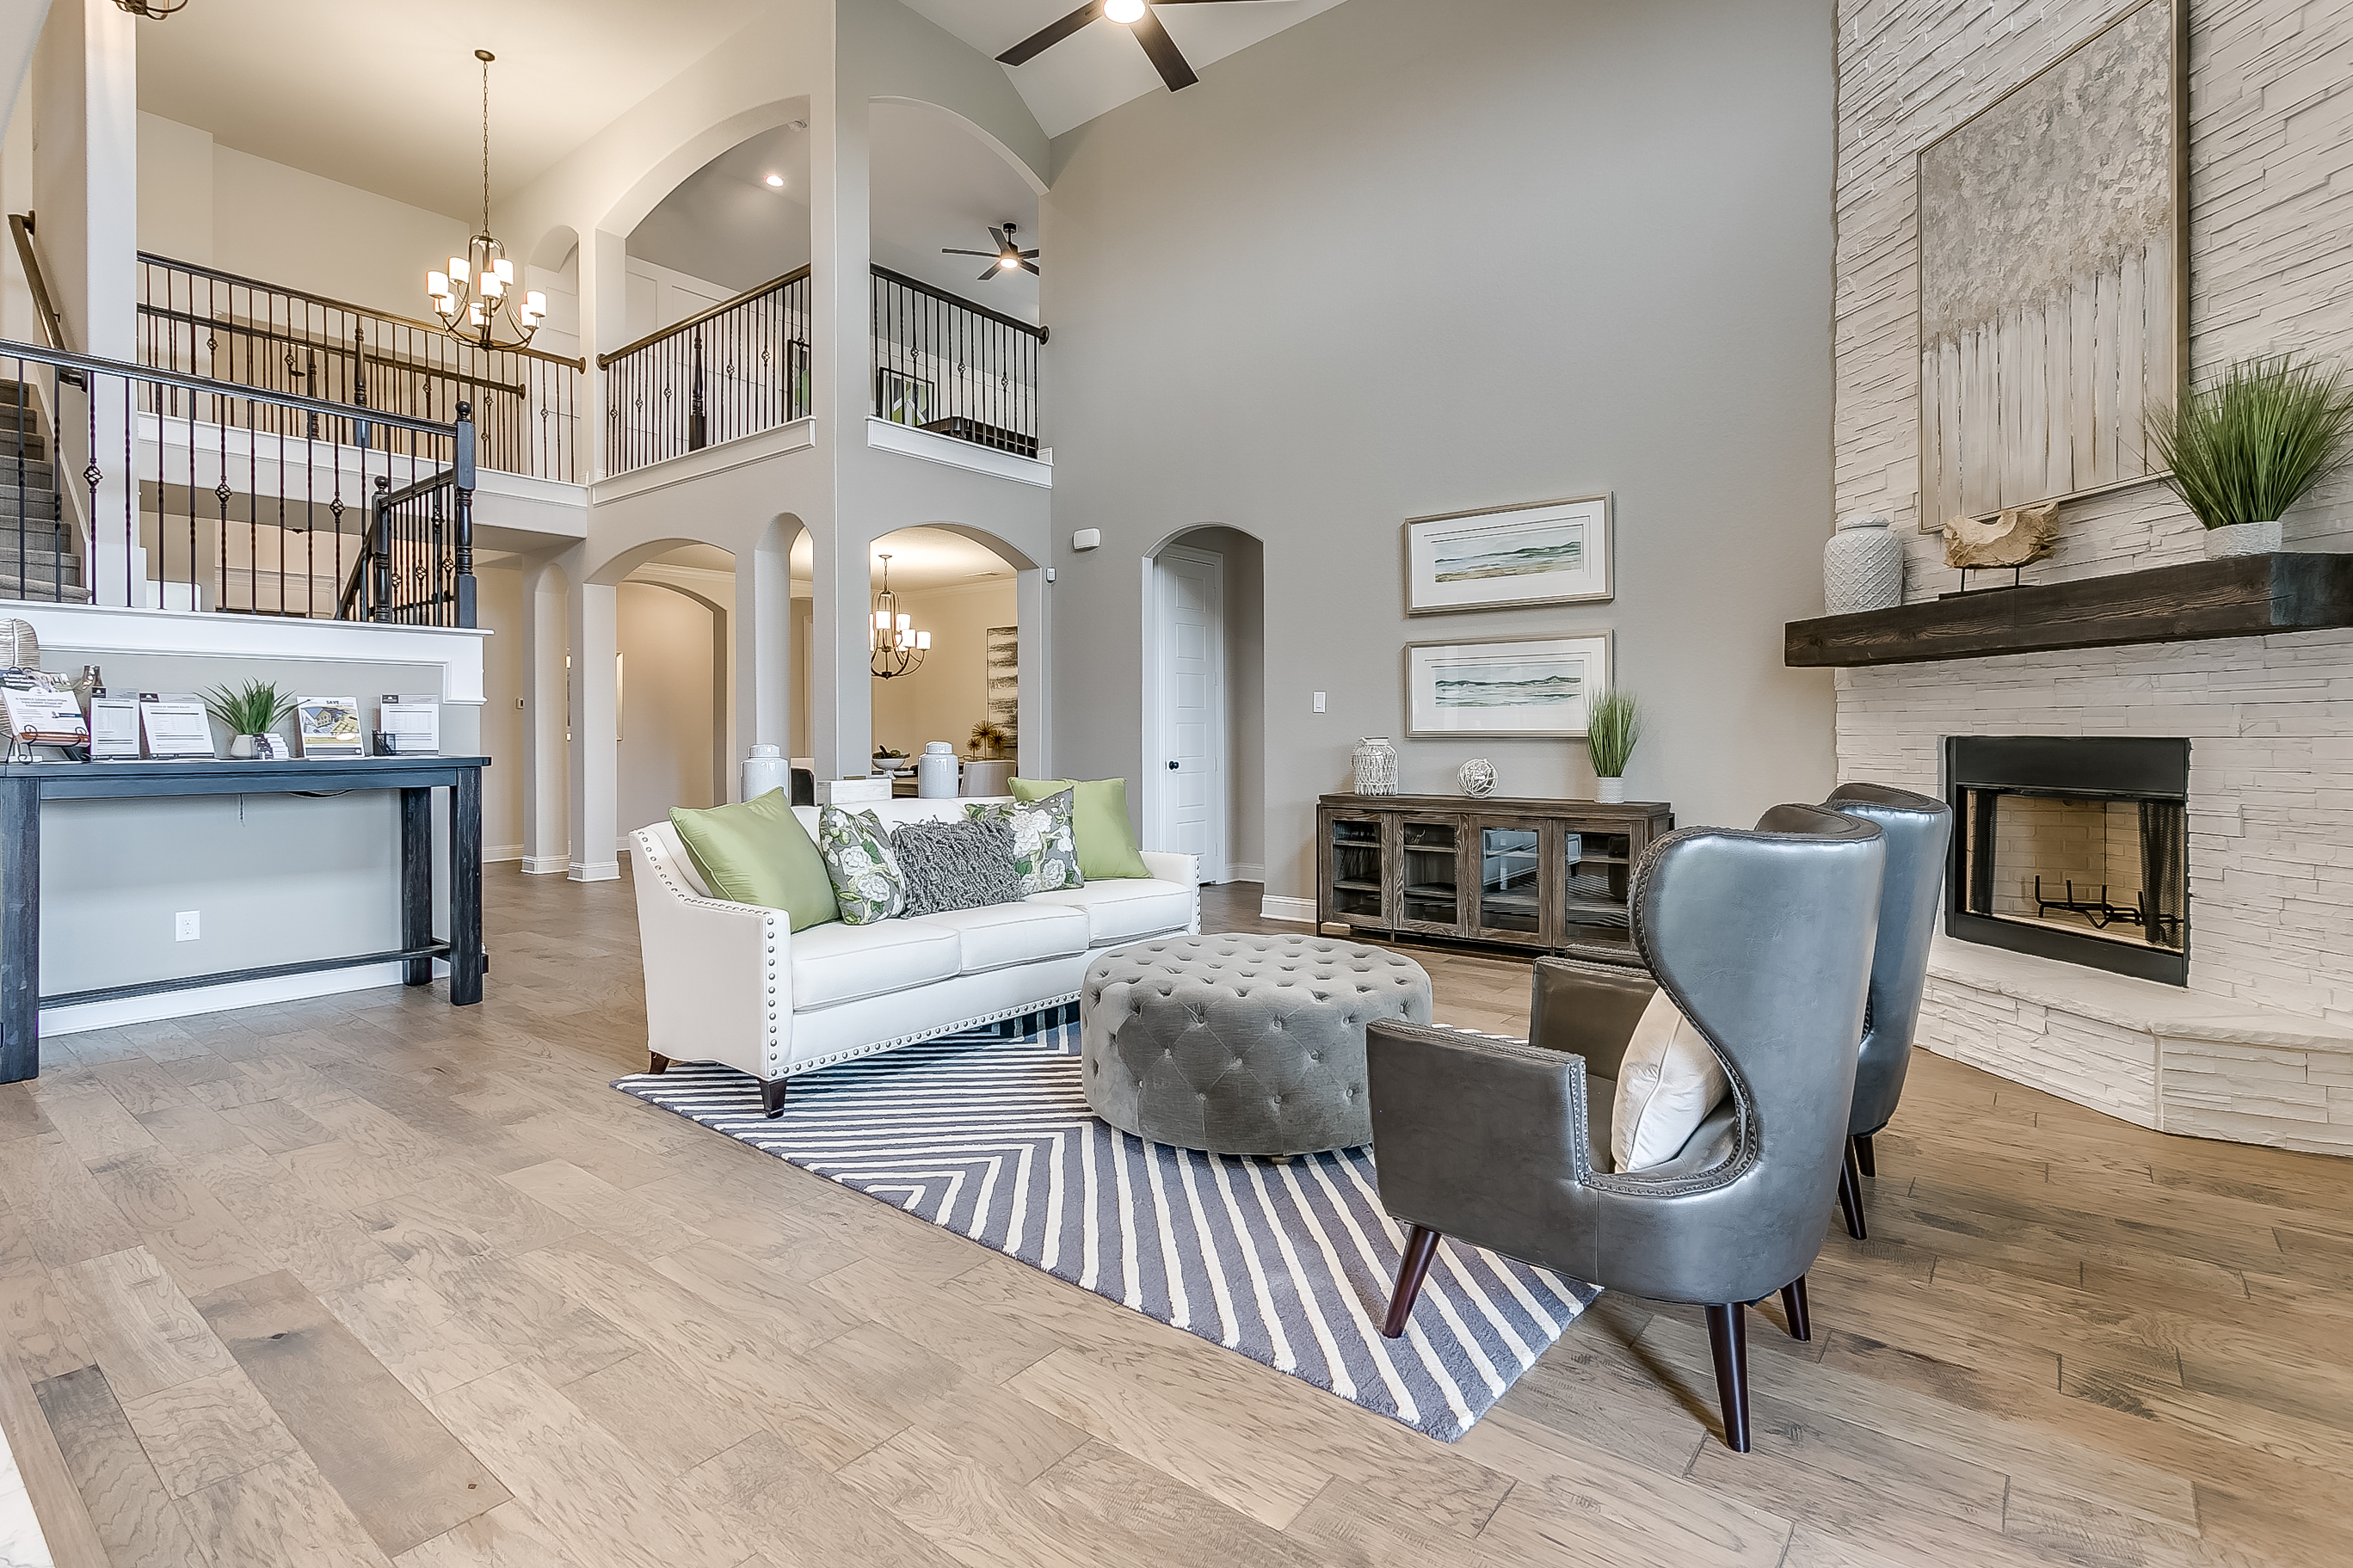 Estates at North Grove, Waxahachie, new homes for sale, waxahachie home builder, ellis county, model home, 3d gallery, 3d home tour, model home photos, living room